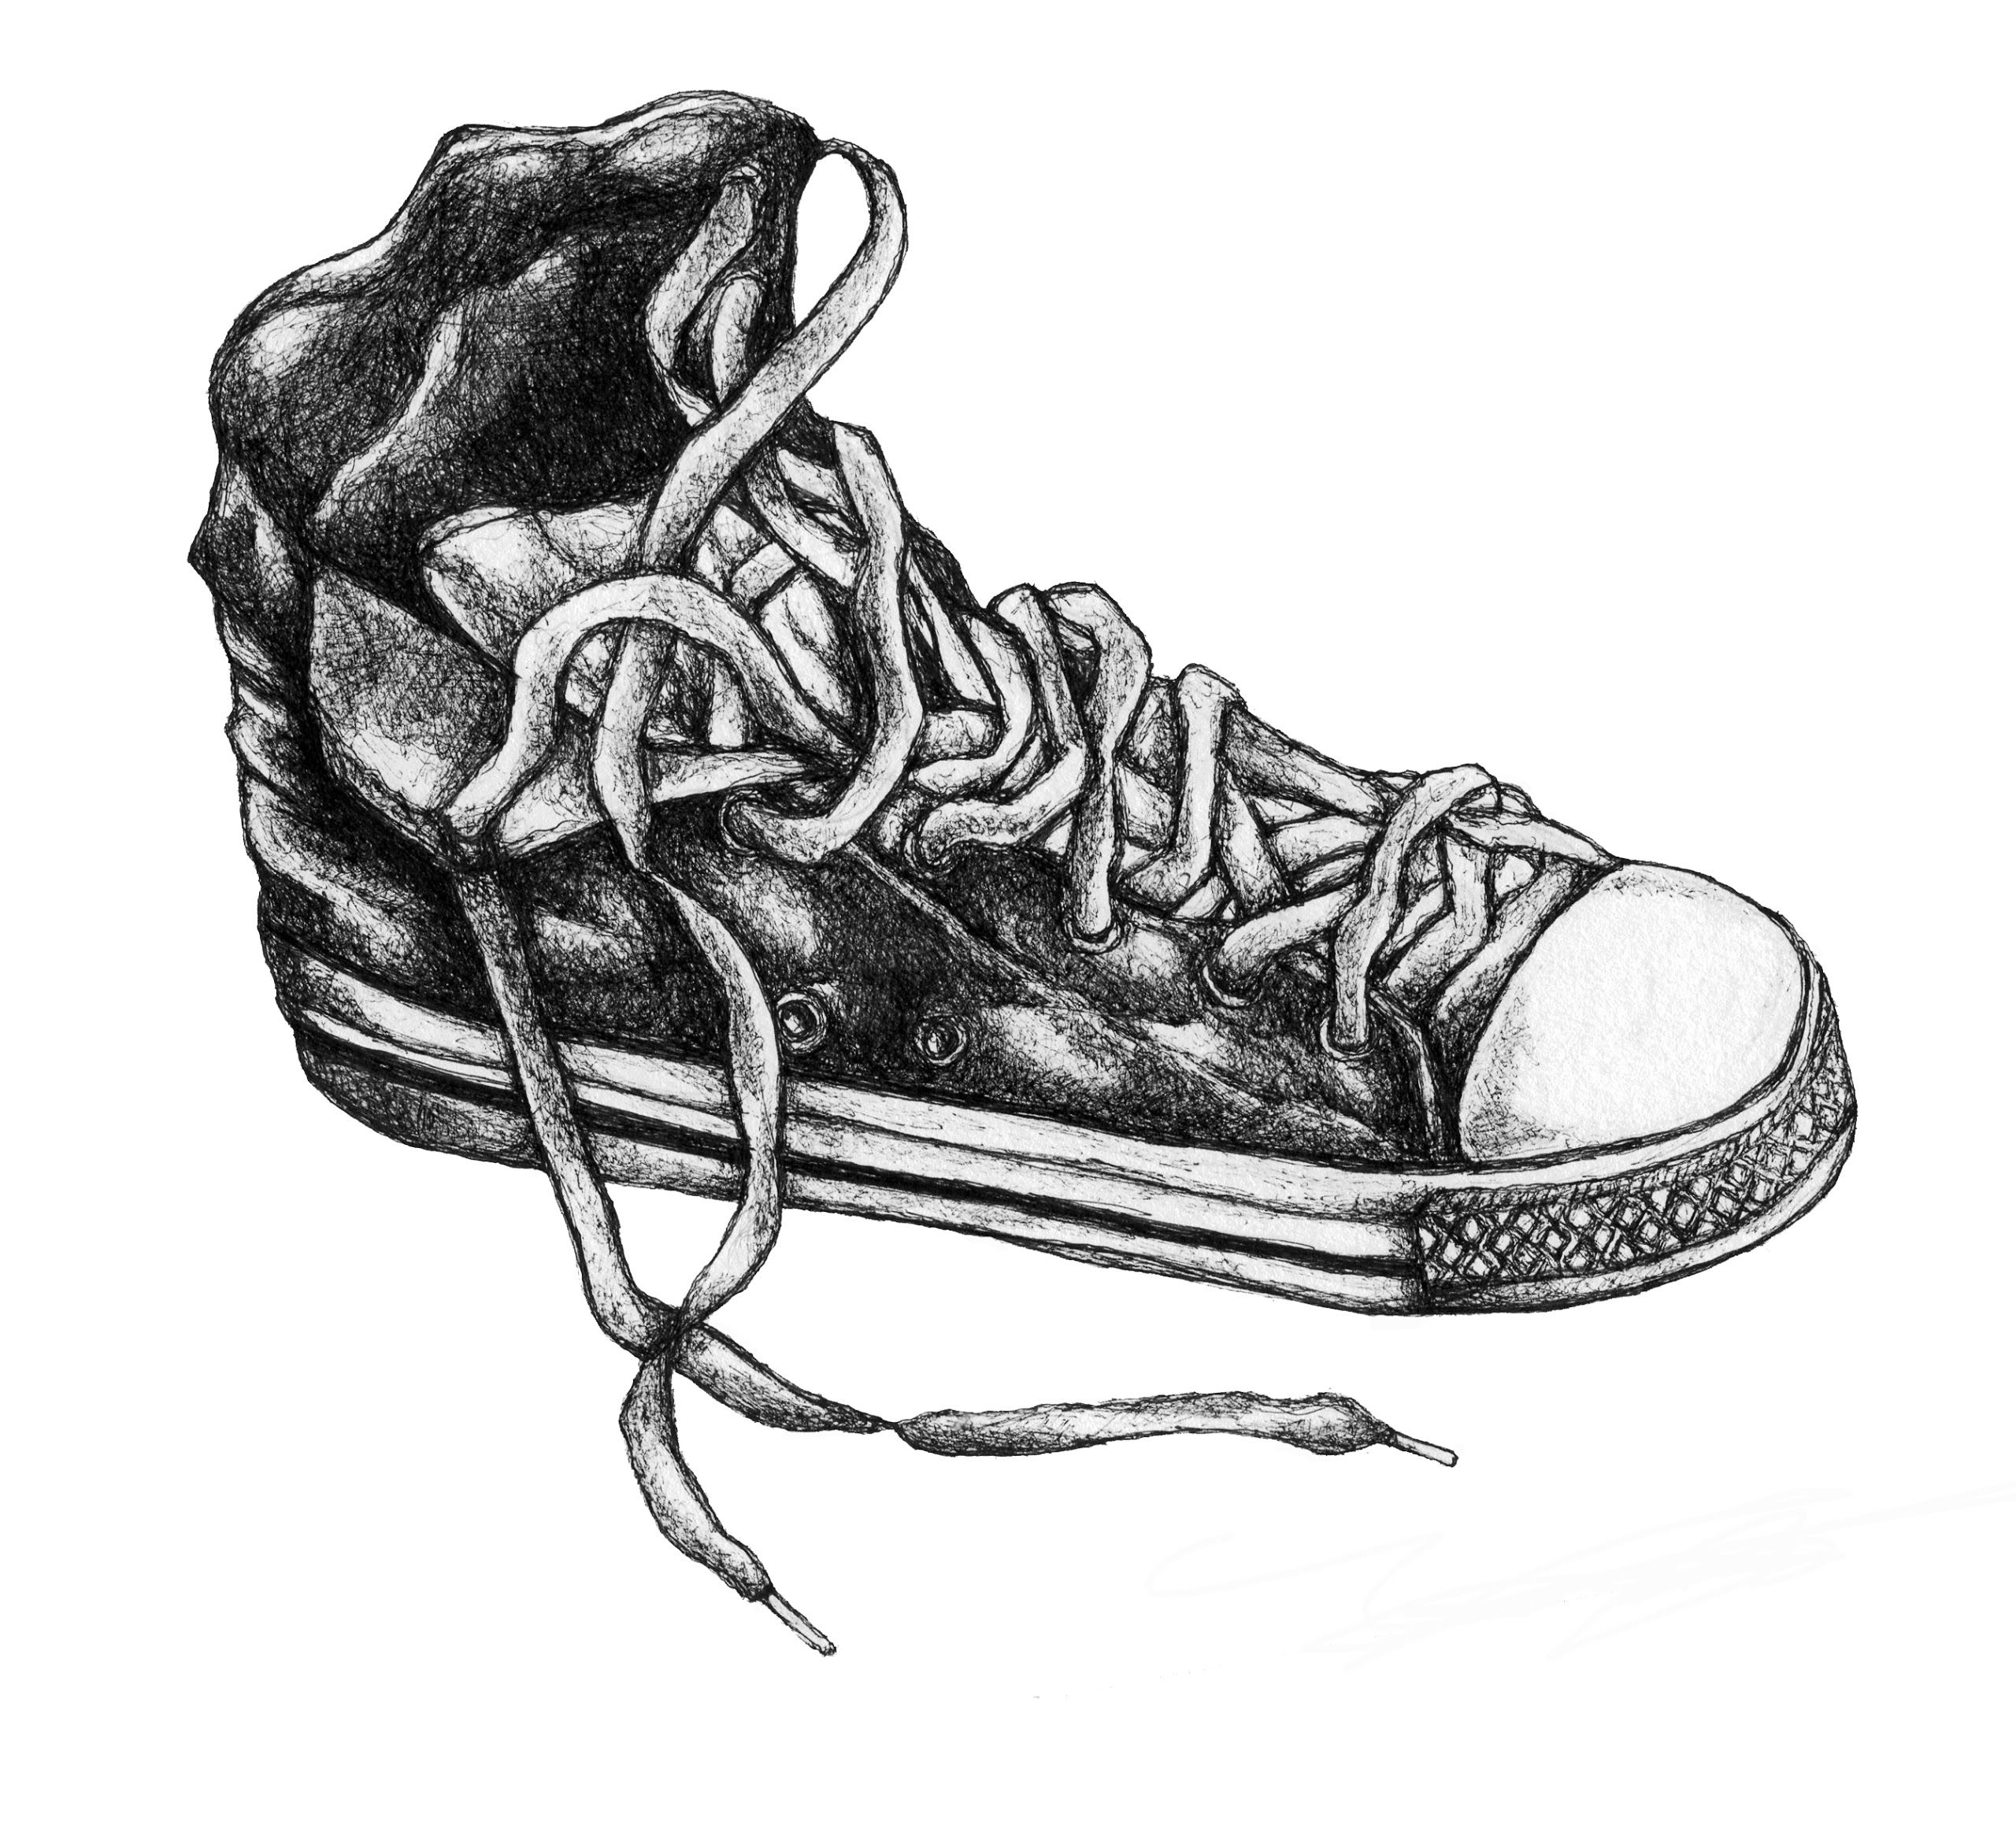 Single converse shoe study | Shoes: GCSE Drawing Task ...